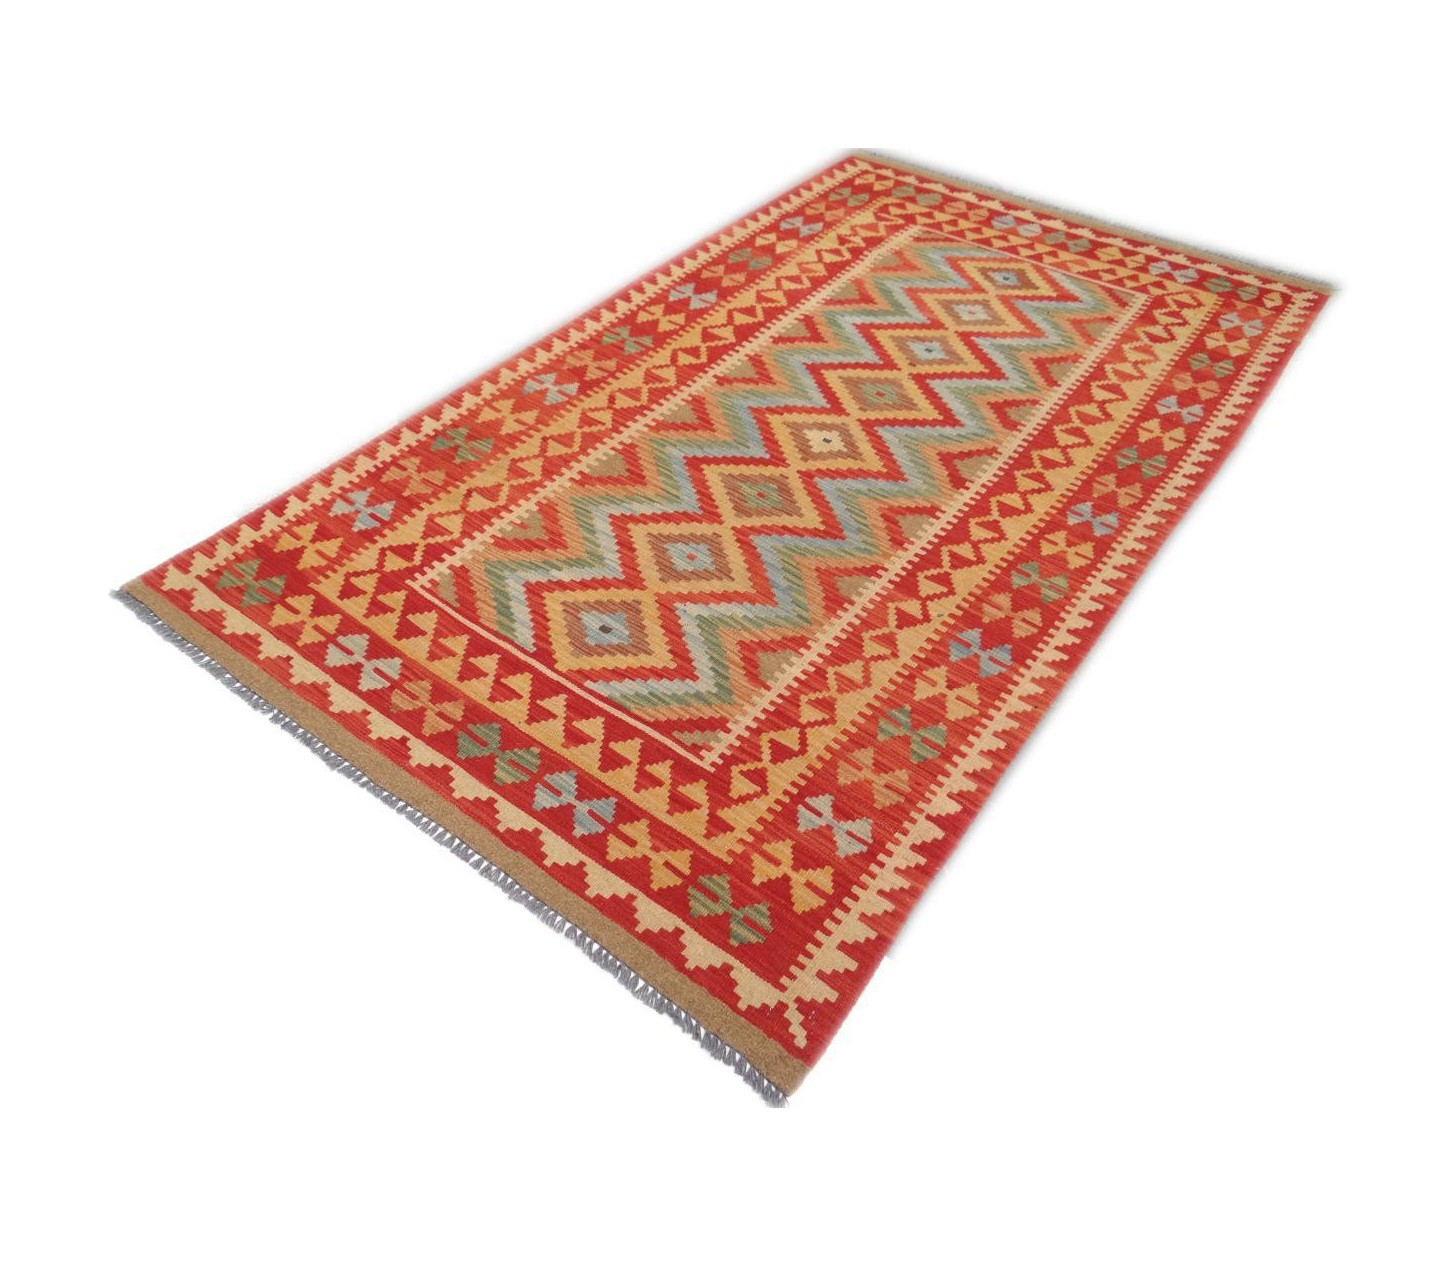 Kilim Afghan Traditionnel 207 x 121 cm